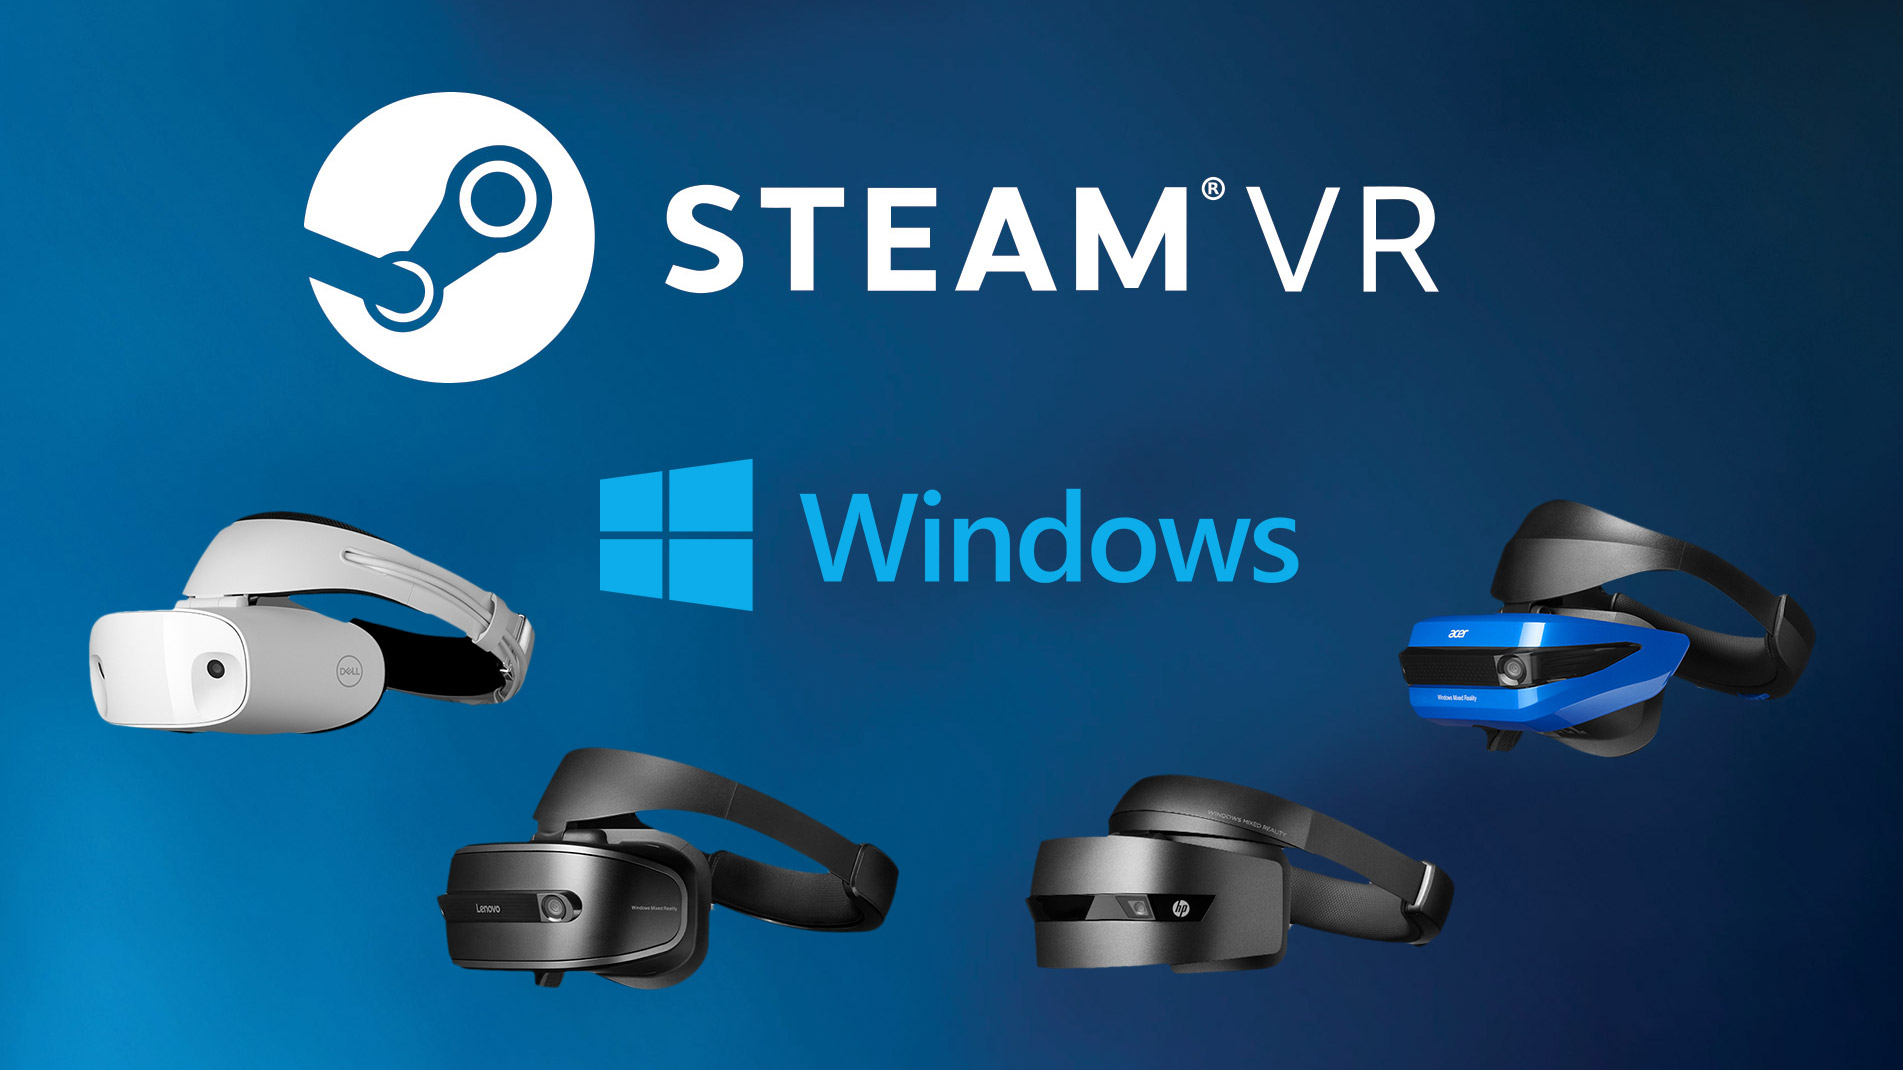 Photo of virtual reality games in 10 windows, courtesy of Steam